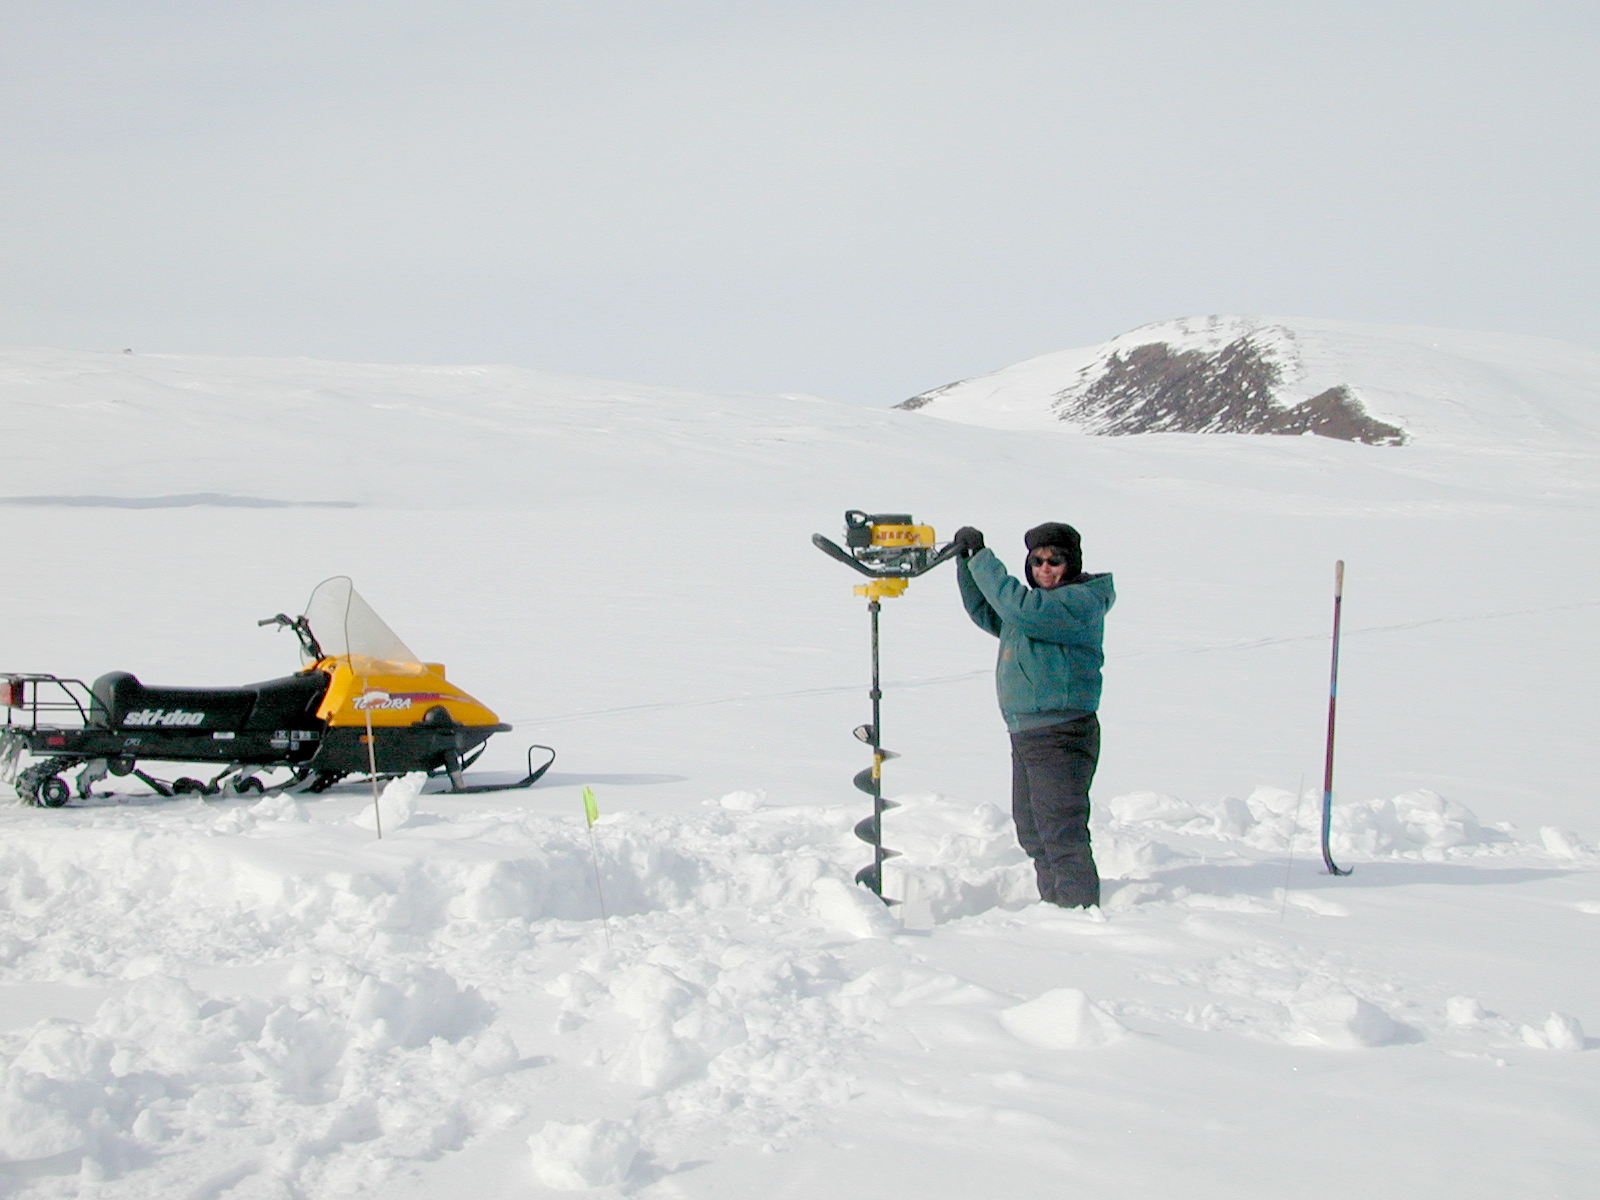 snowy landscape with a person using augur to dril through ice.